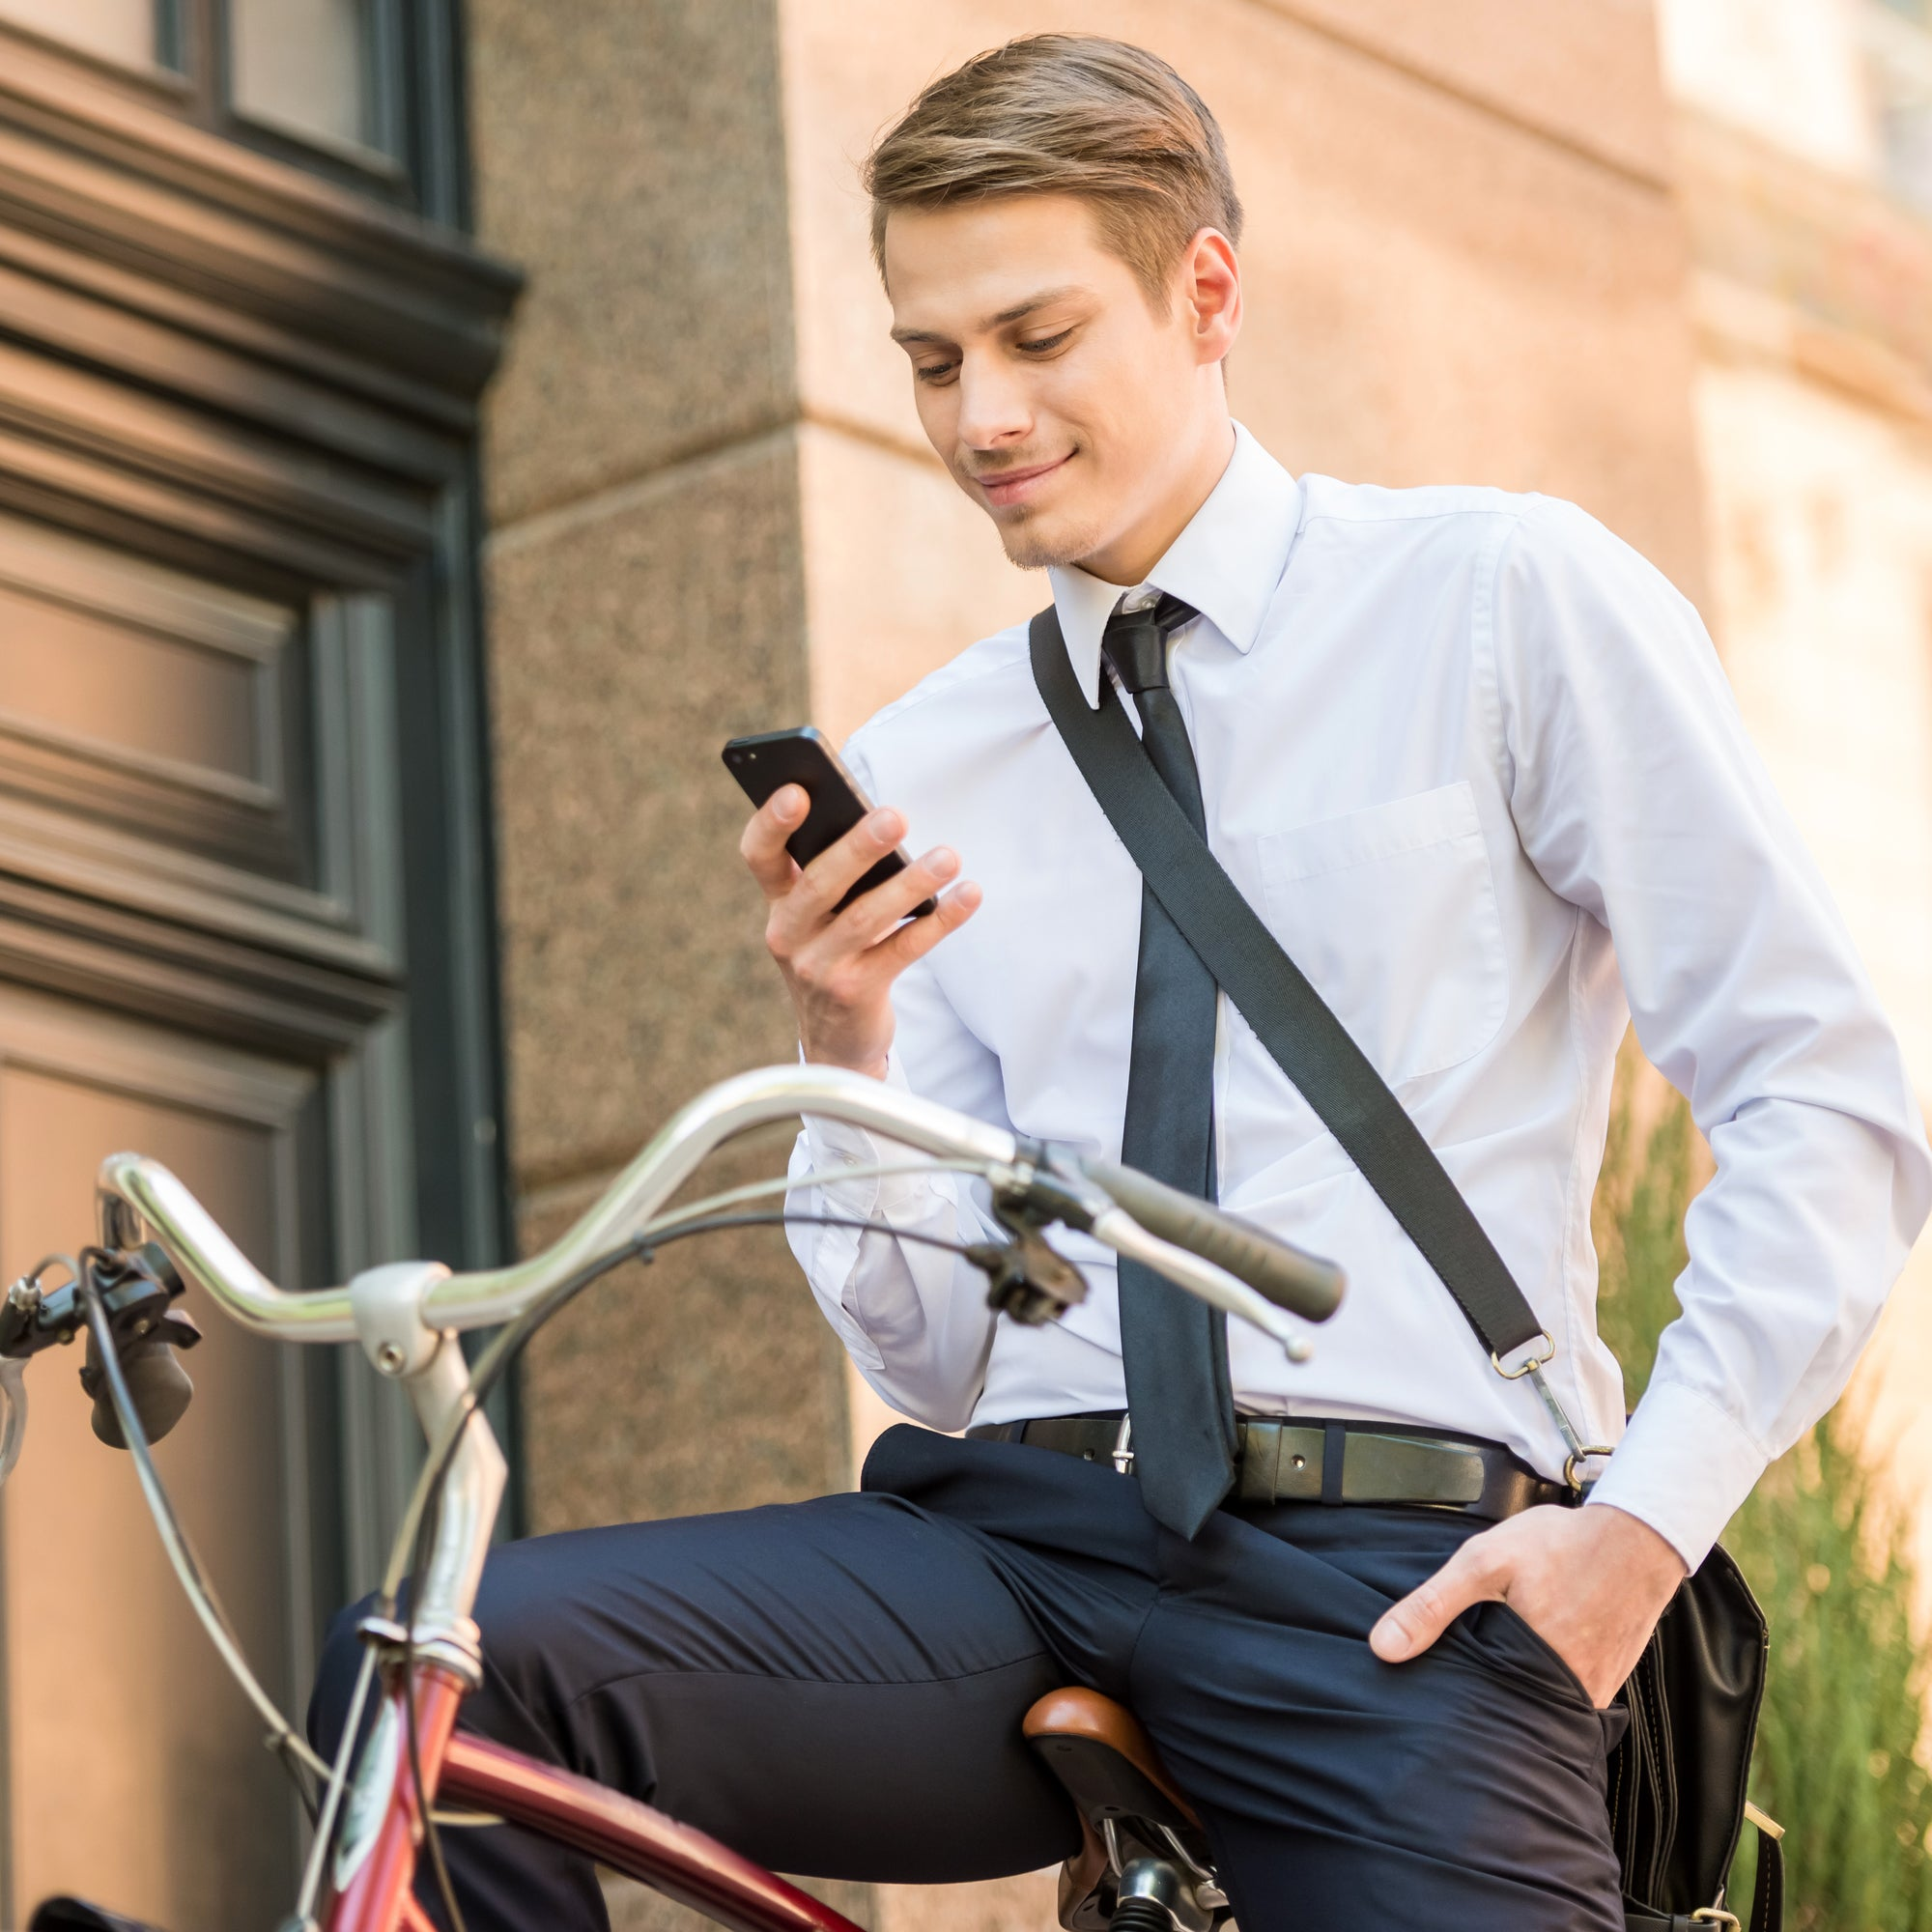 How To Transition From Bike To The Office In 10 Minutes